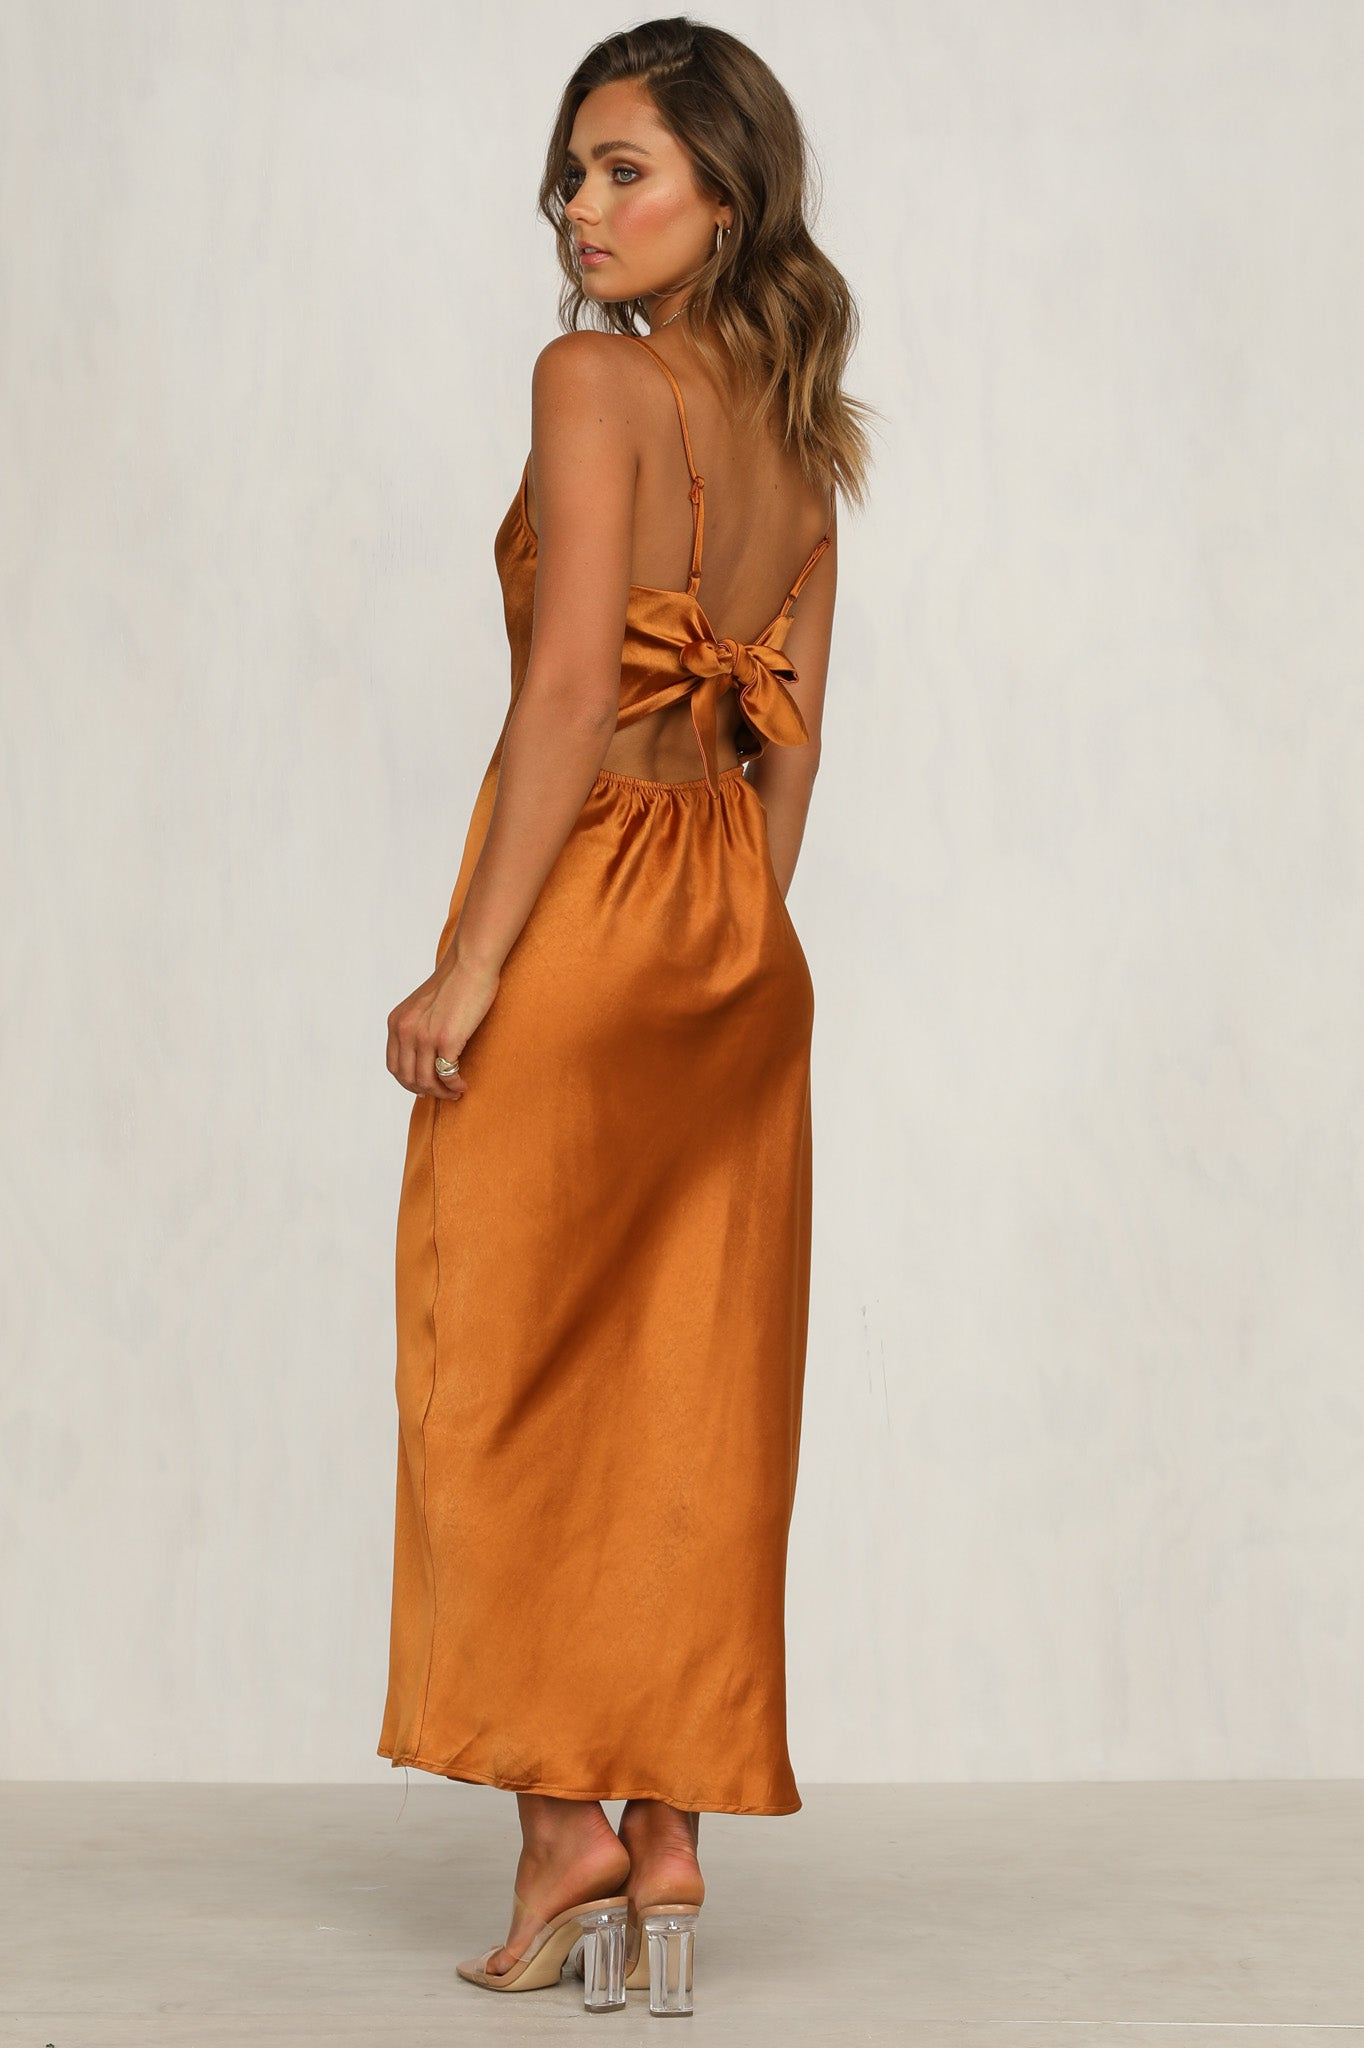 Bella Vista Dress